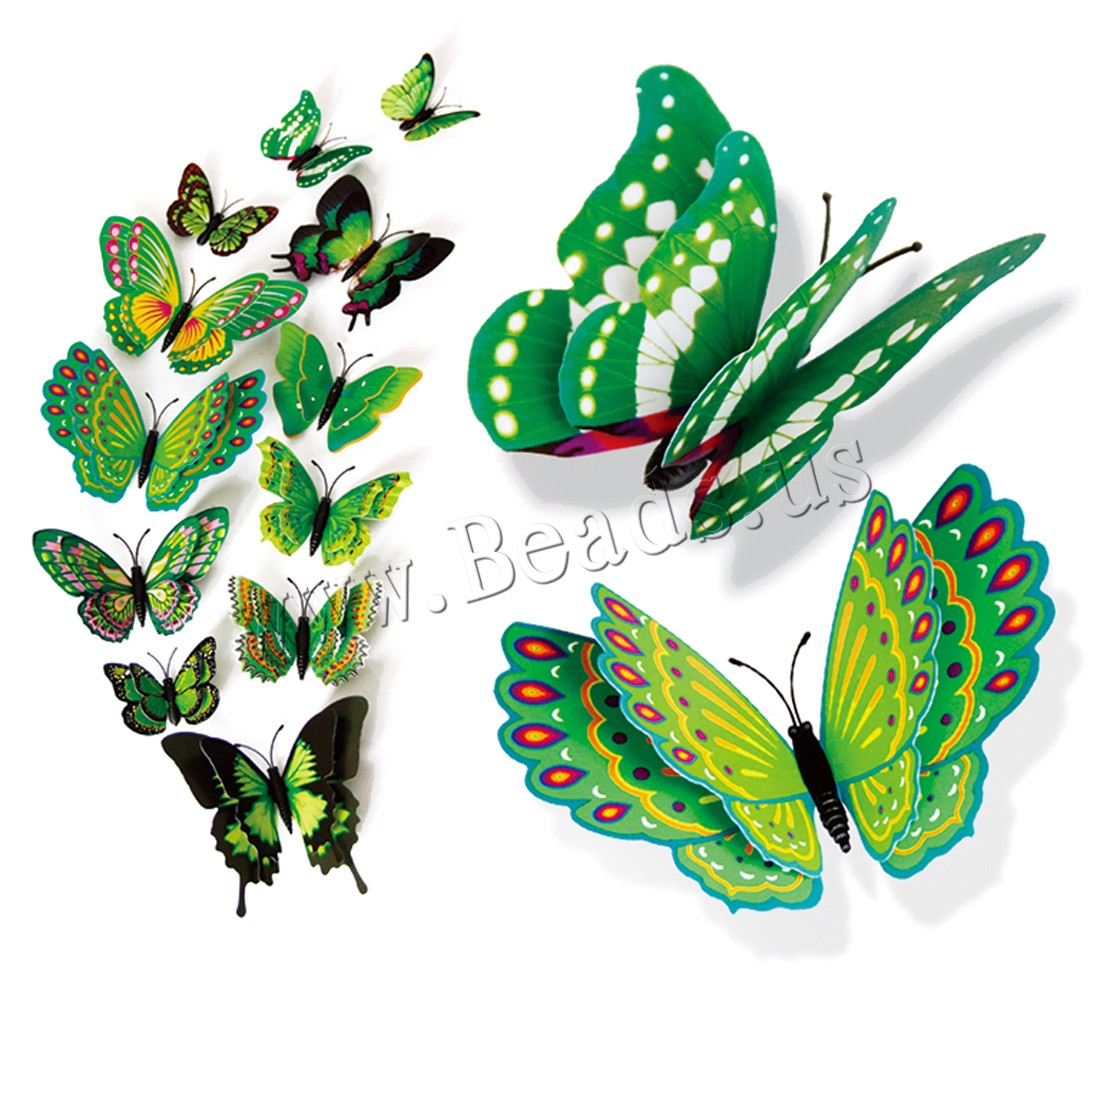 Buy 3D Wall Stickers PVC Plastic Butterfly adhesive & 3D effect & waterproof colors choice 60mm 80mm 10mm 12mm 12PCs/Set Sold Set